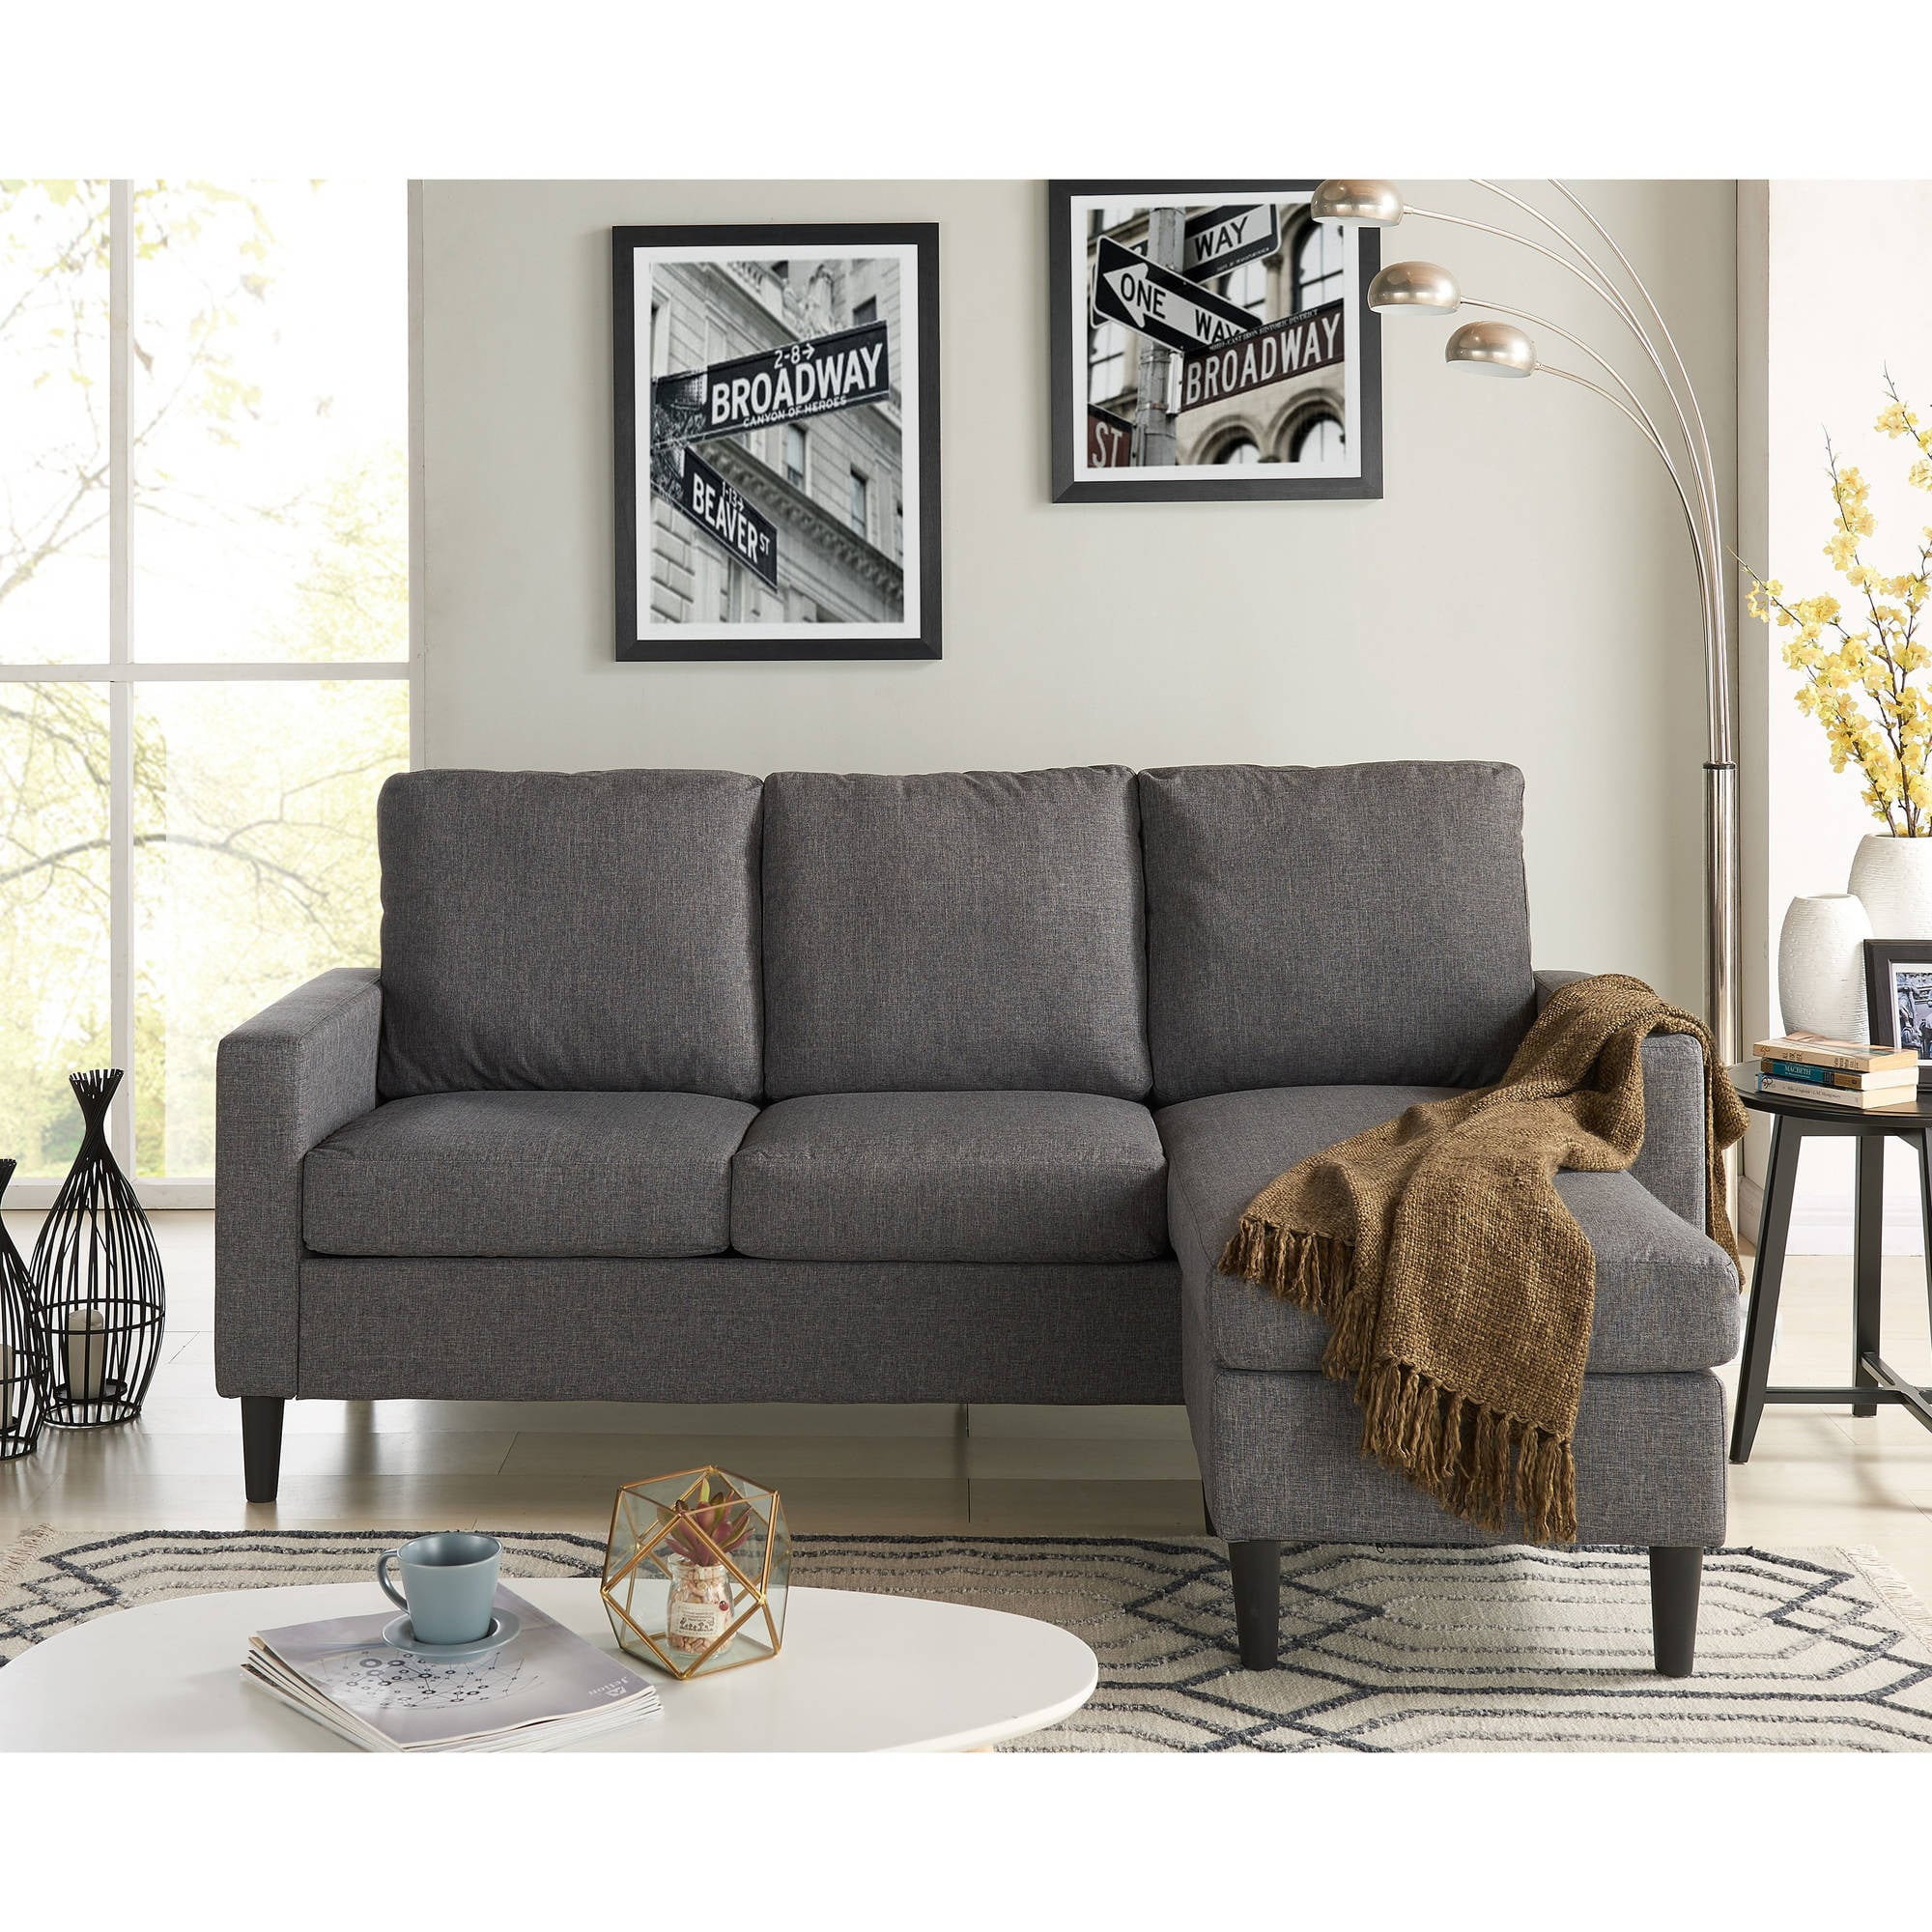 Mainstays Apartment Reversible Sectional | 14 Small Sofas ...